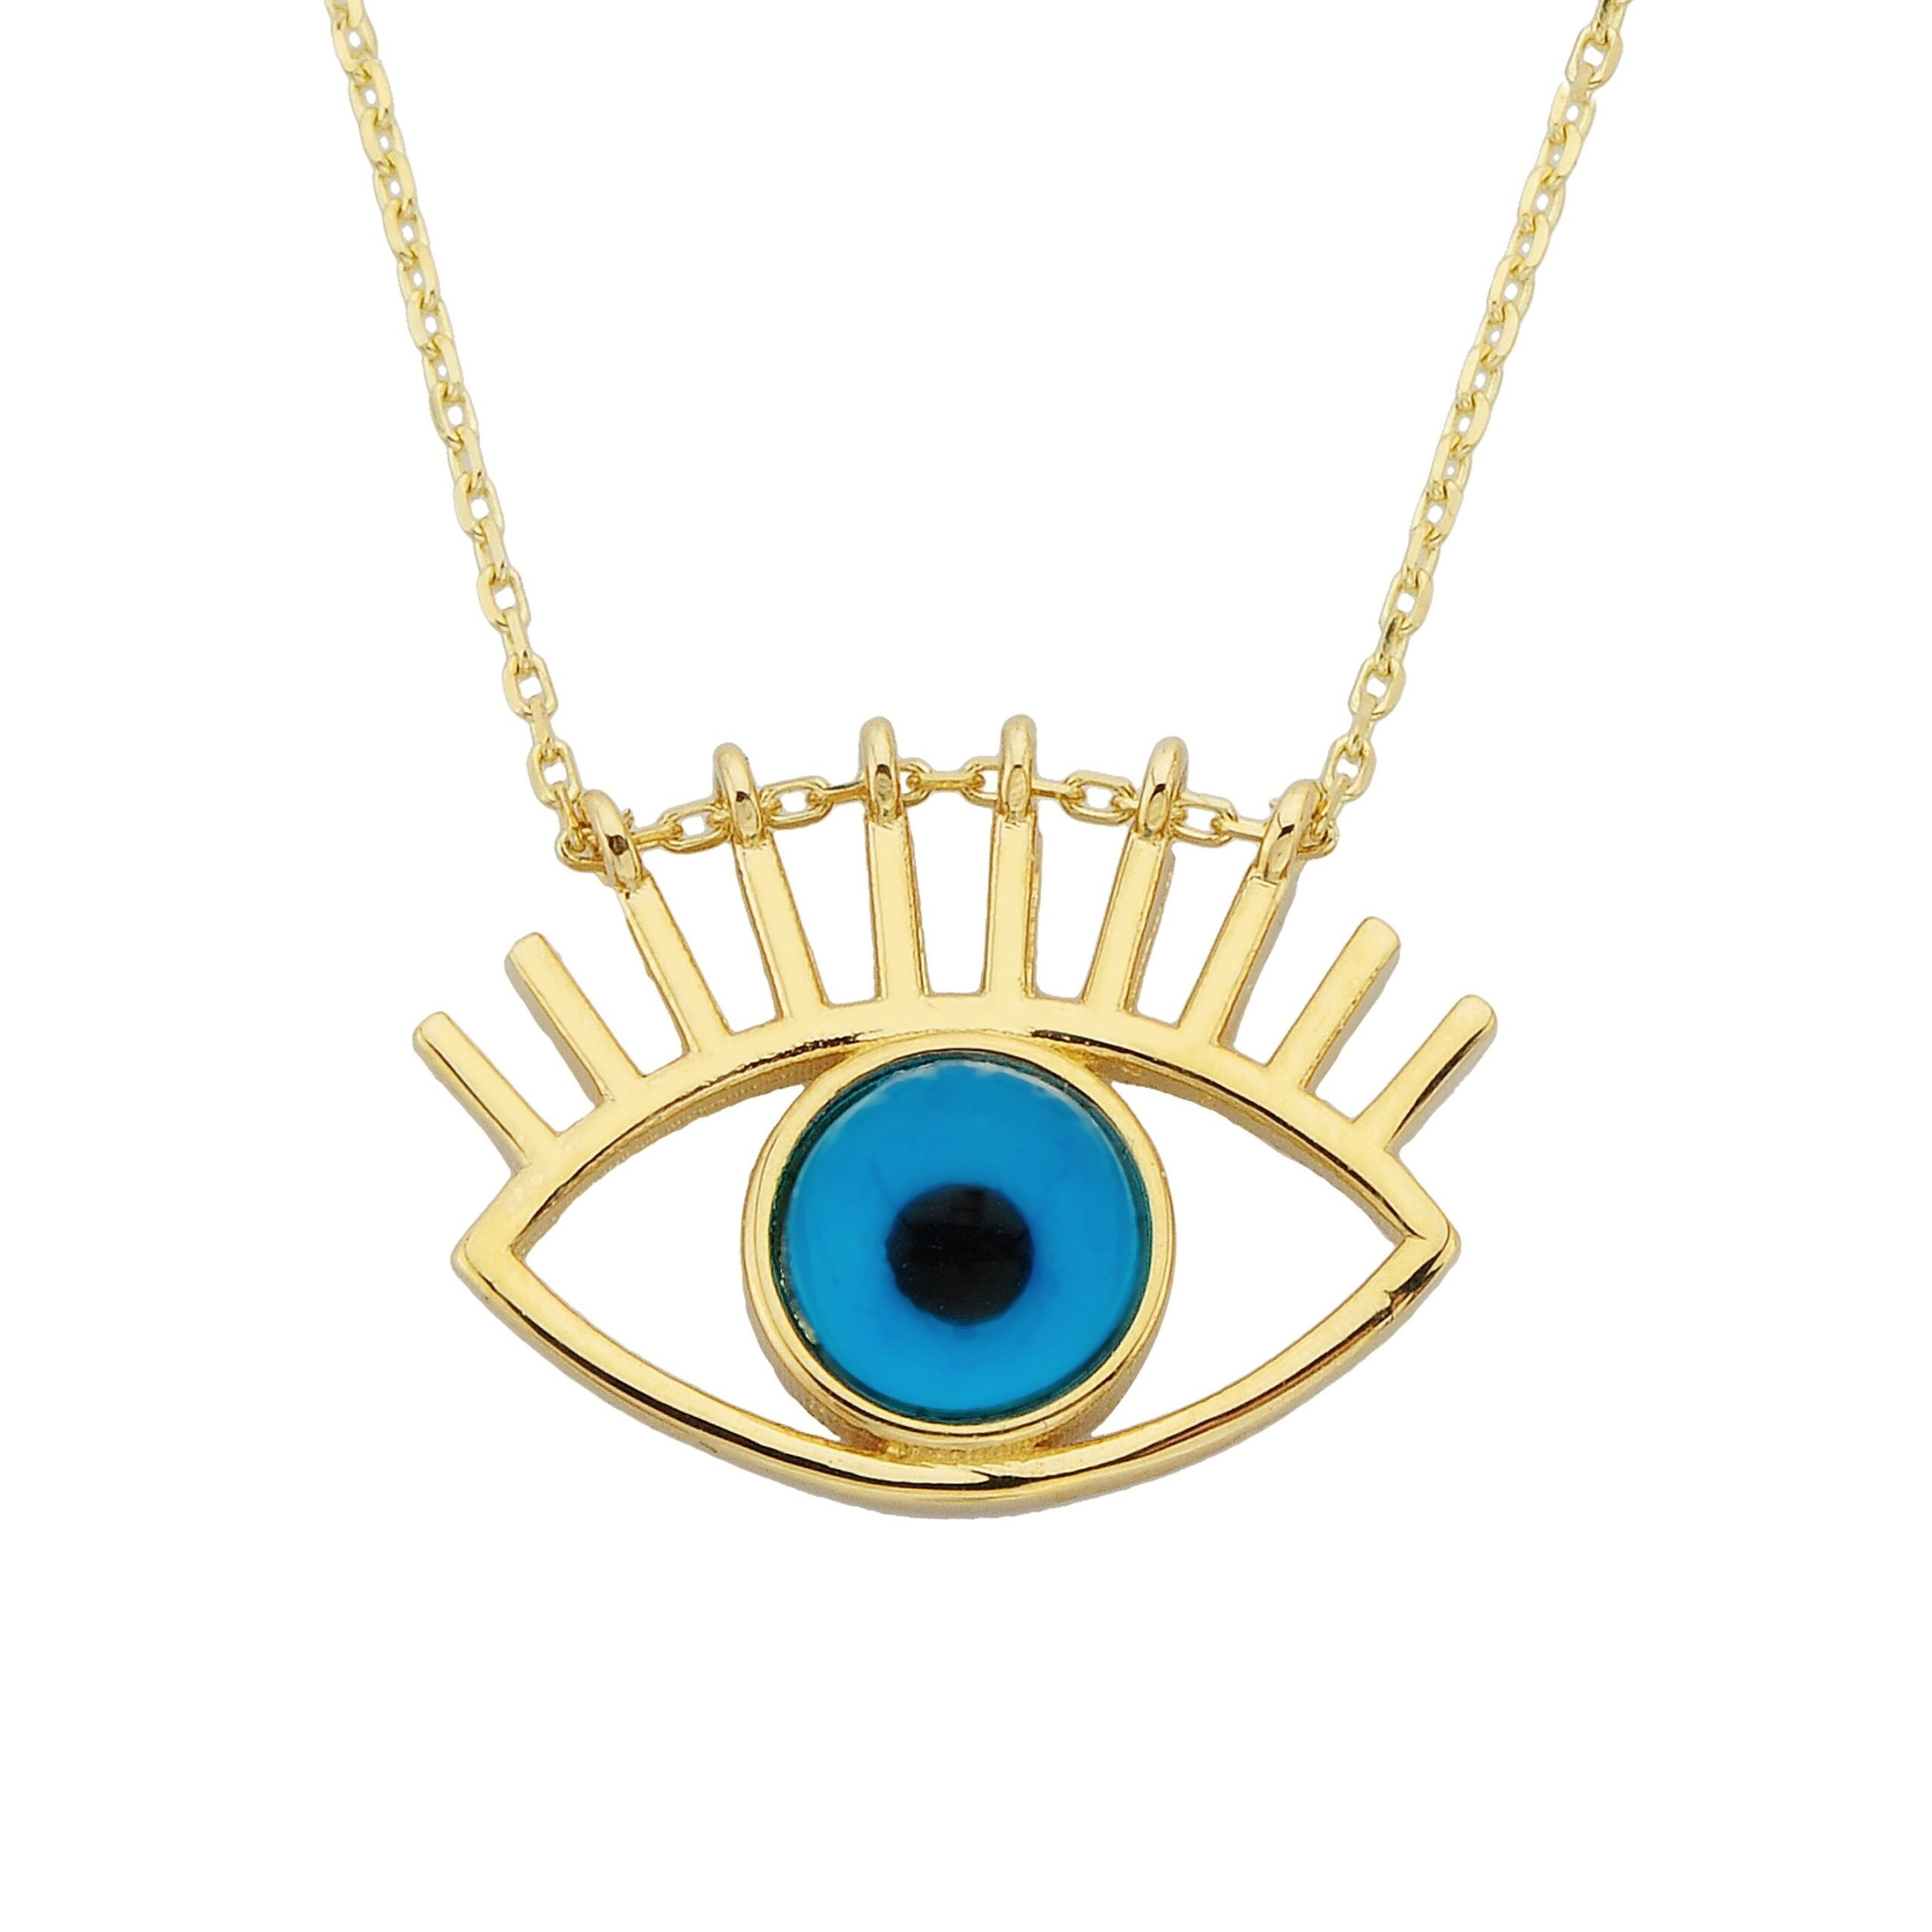 Evil Eye Eyelash Pendant Necklace for Women 14K Real Solid Gold |Lucky Good Luck Nazar Protection Jewelry Birthday Christmas Mother's Day Protection